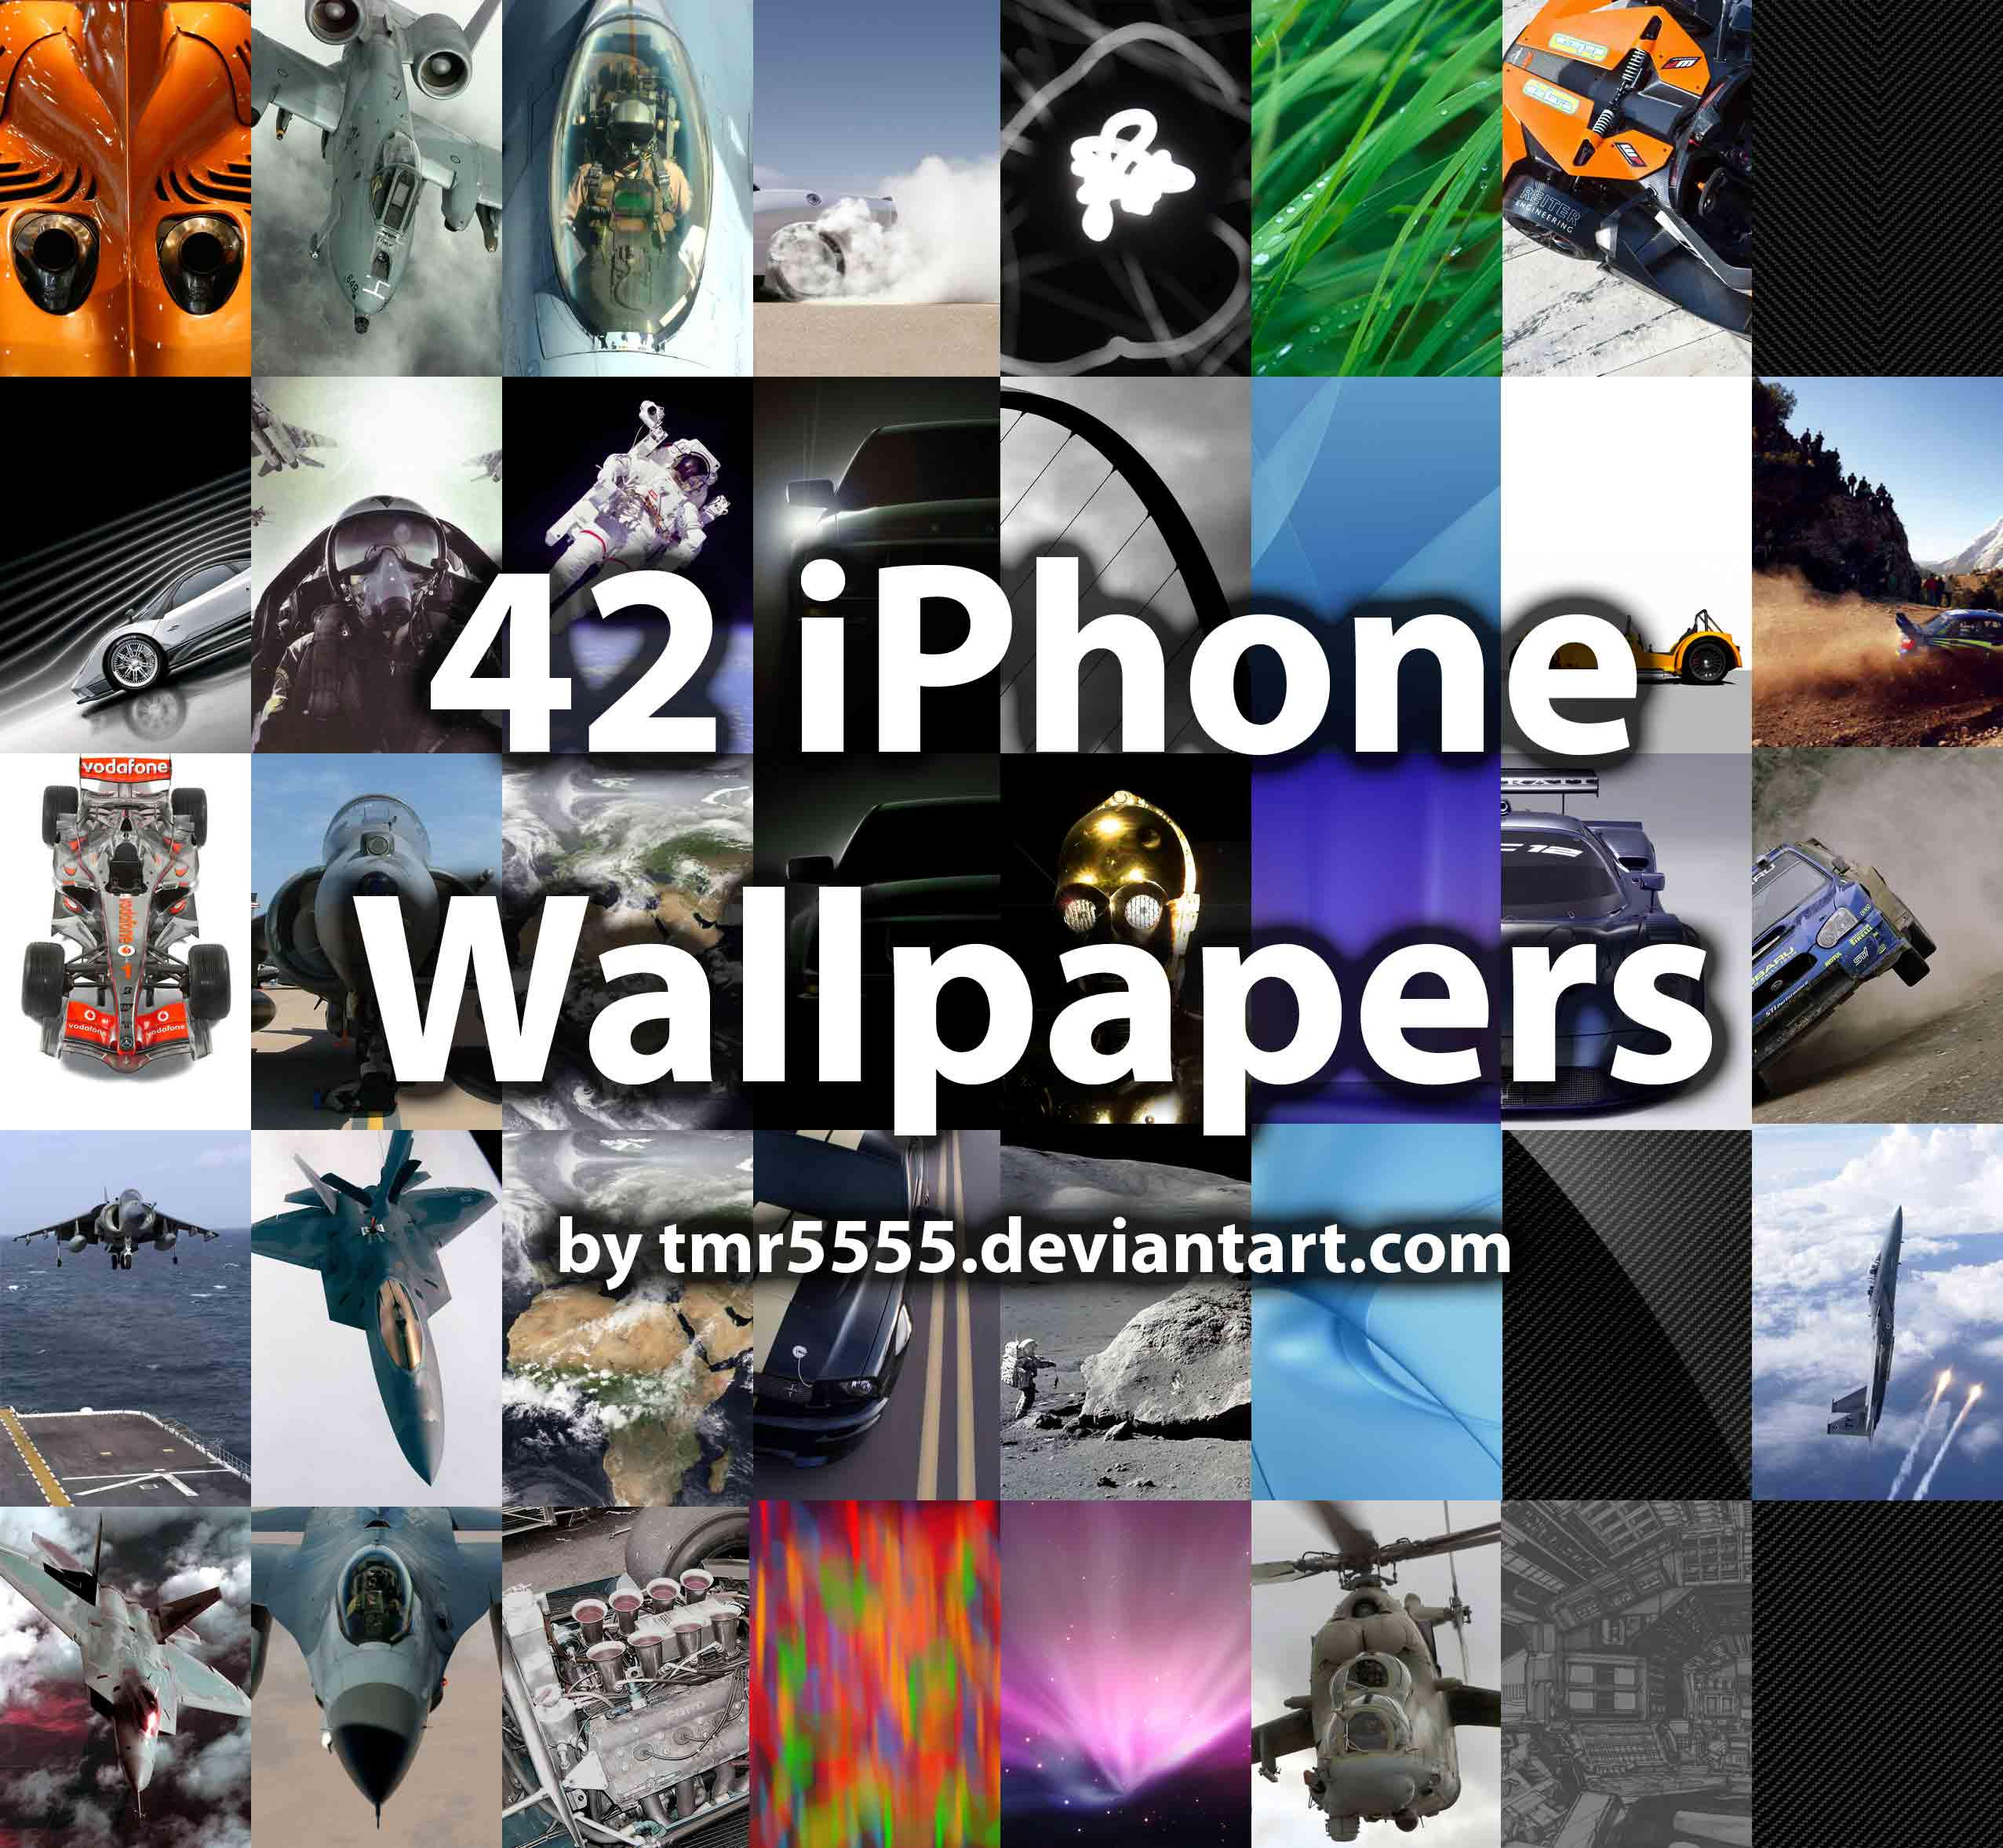 Iphone wallpapers by tmr5555